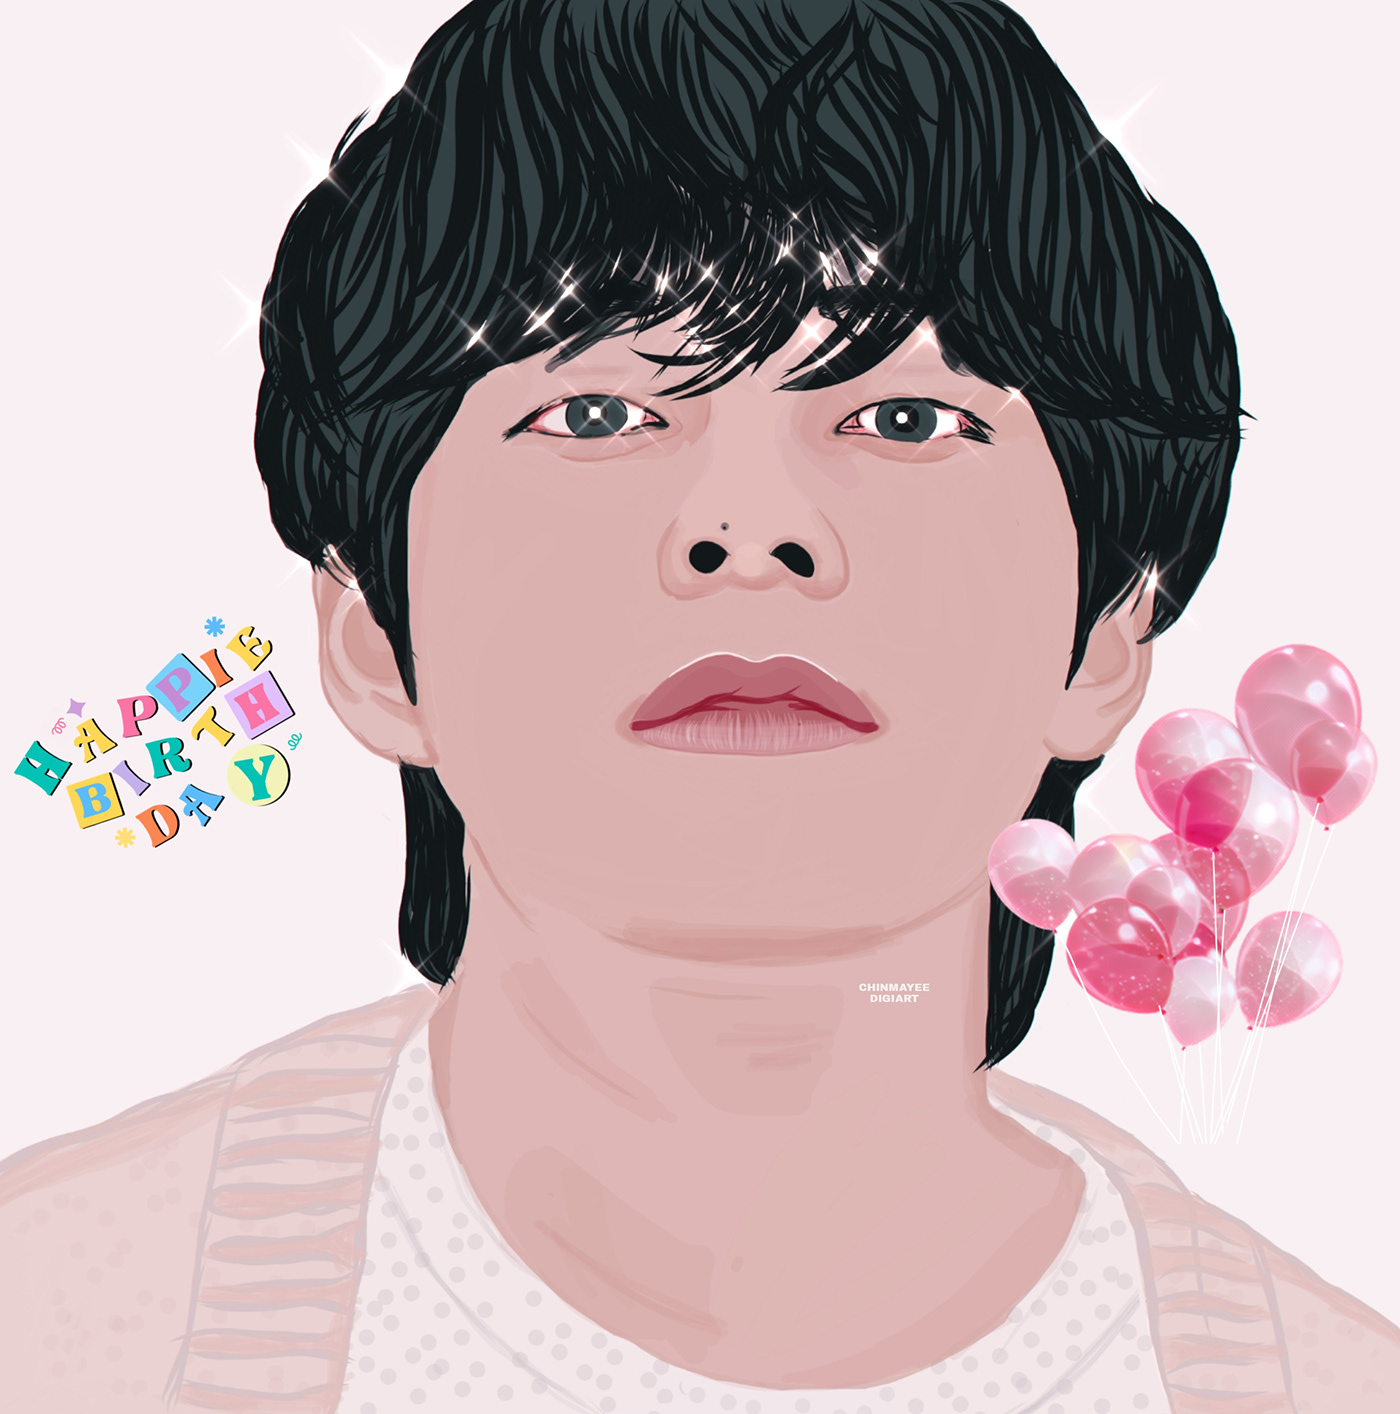 adobe draw,art,bts,BTS FanArt,bts taehyung,Digital Art ,digital illustration,Drawing ,fanart,ILLUSTRATION ,Kim Taehyung,kpop art,kpop fanart,TAEHYUNG,taehyung fanart